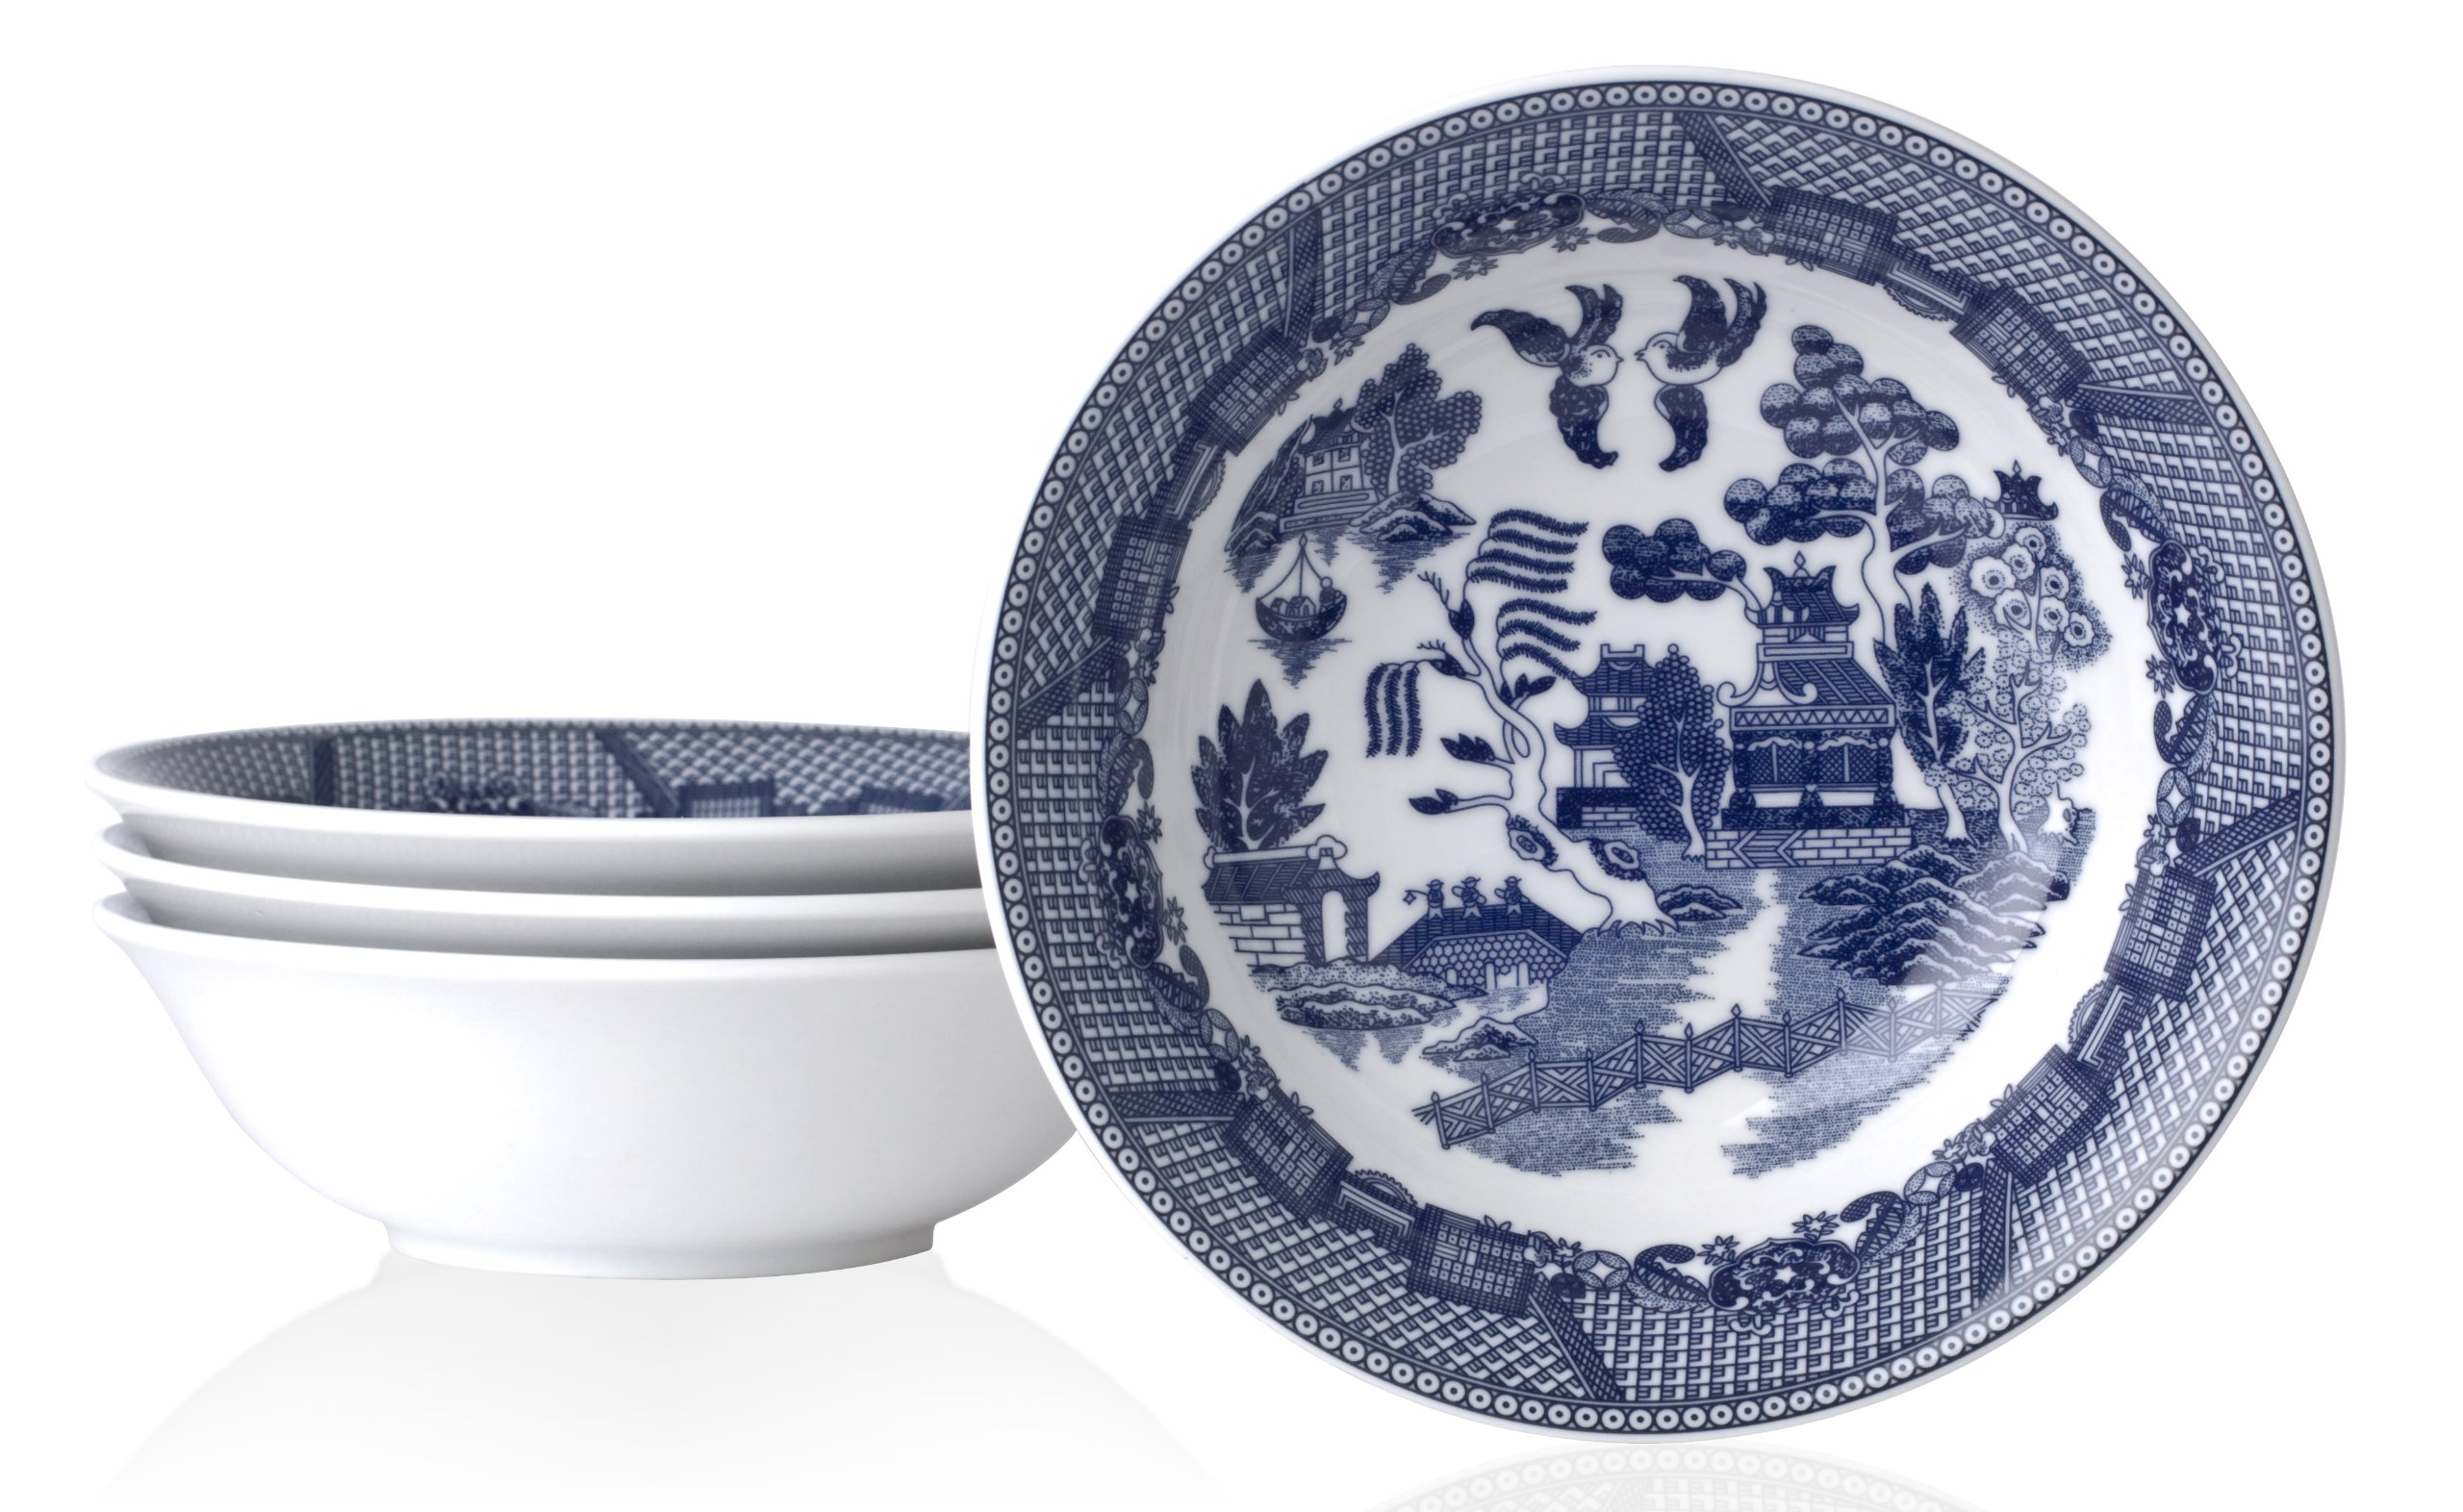 HIC Harold Import Co. YK-334 Blue Willow Cereal Bowl, Fine White Porcelain, 6.5-Inches, 16-Ounce Capacity